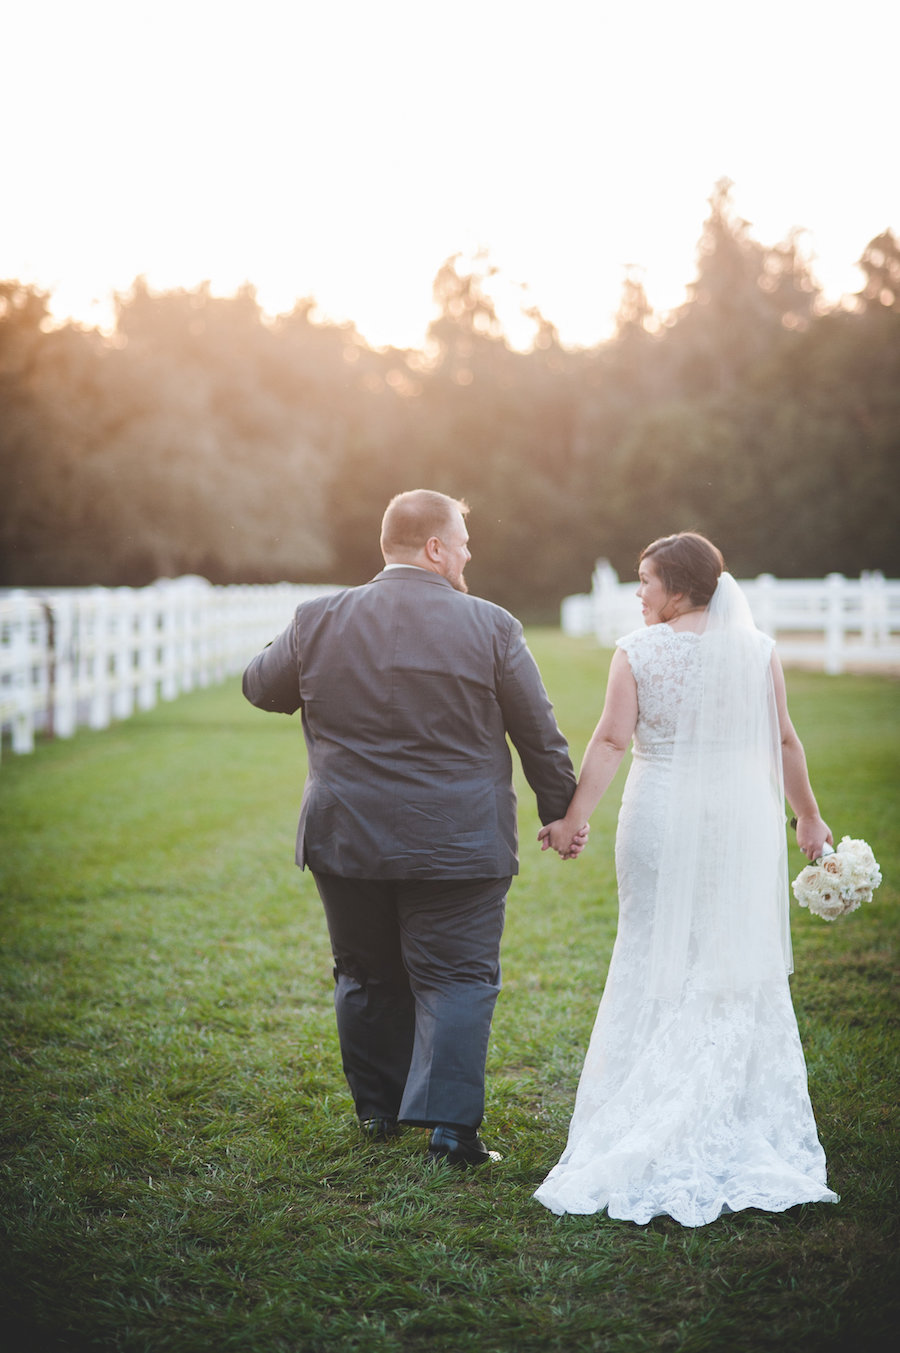 Outdoor Dade City Bride and Groom Wedding Portrait in Ivory, Lace Gown with Veil | Dade City Wedding Venue The Lange Farm